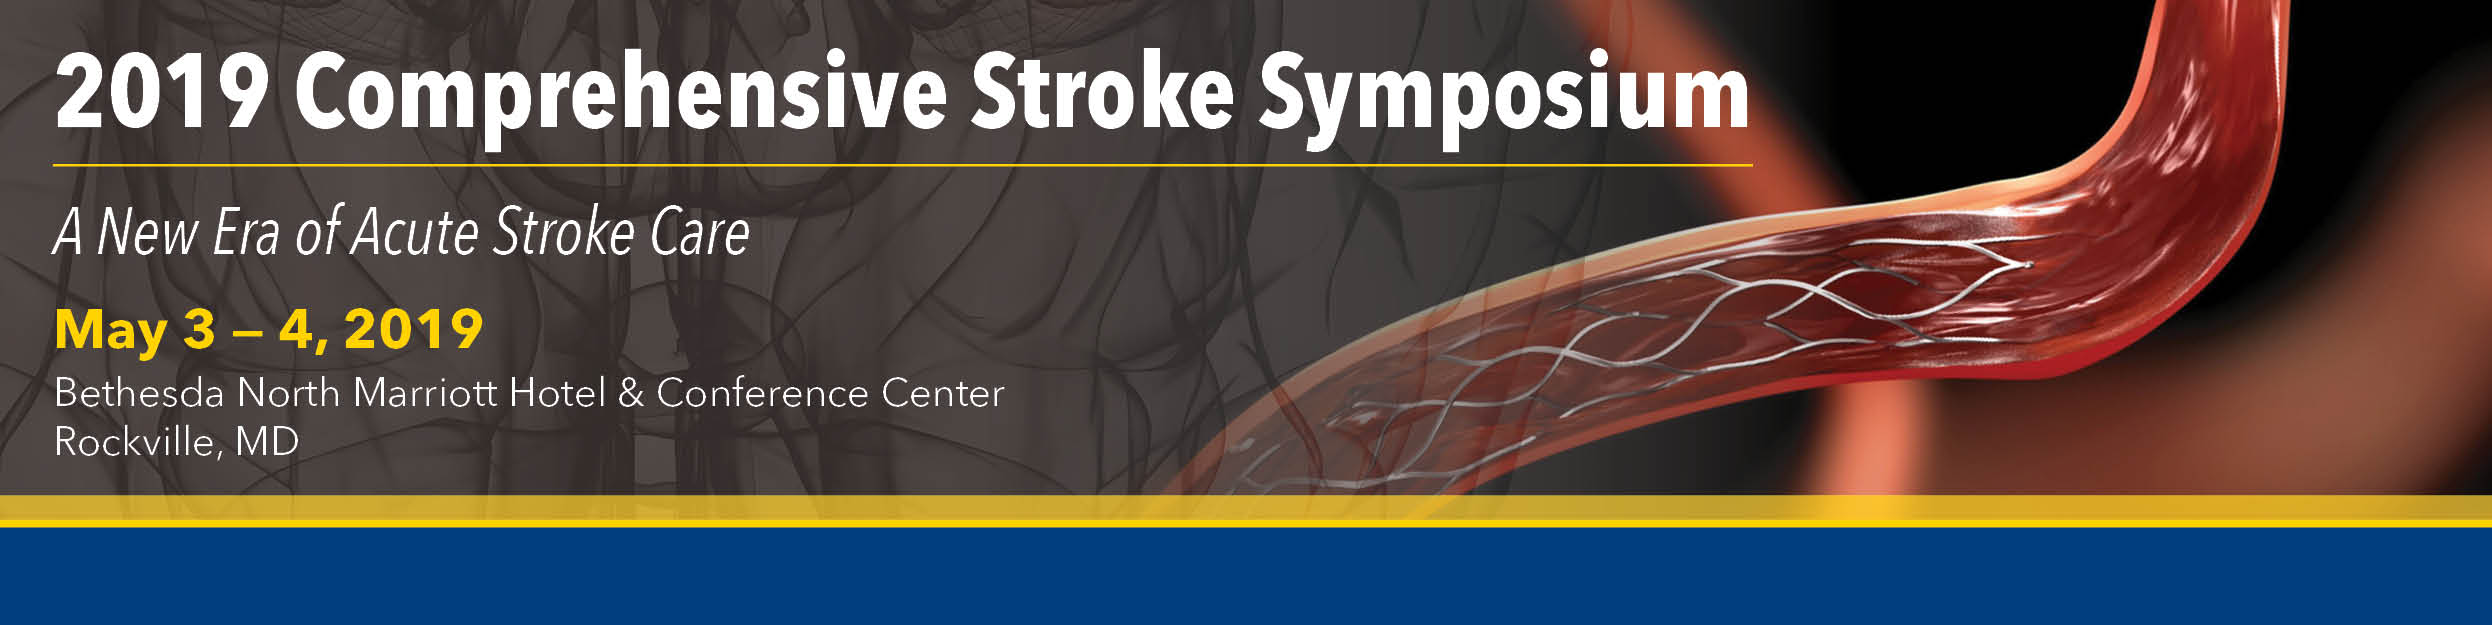 2019 Comprehensive Stroke Symposium: A New Era of Acute Stroke Care Banner